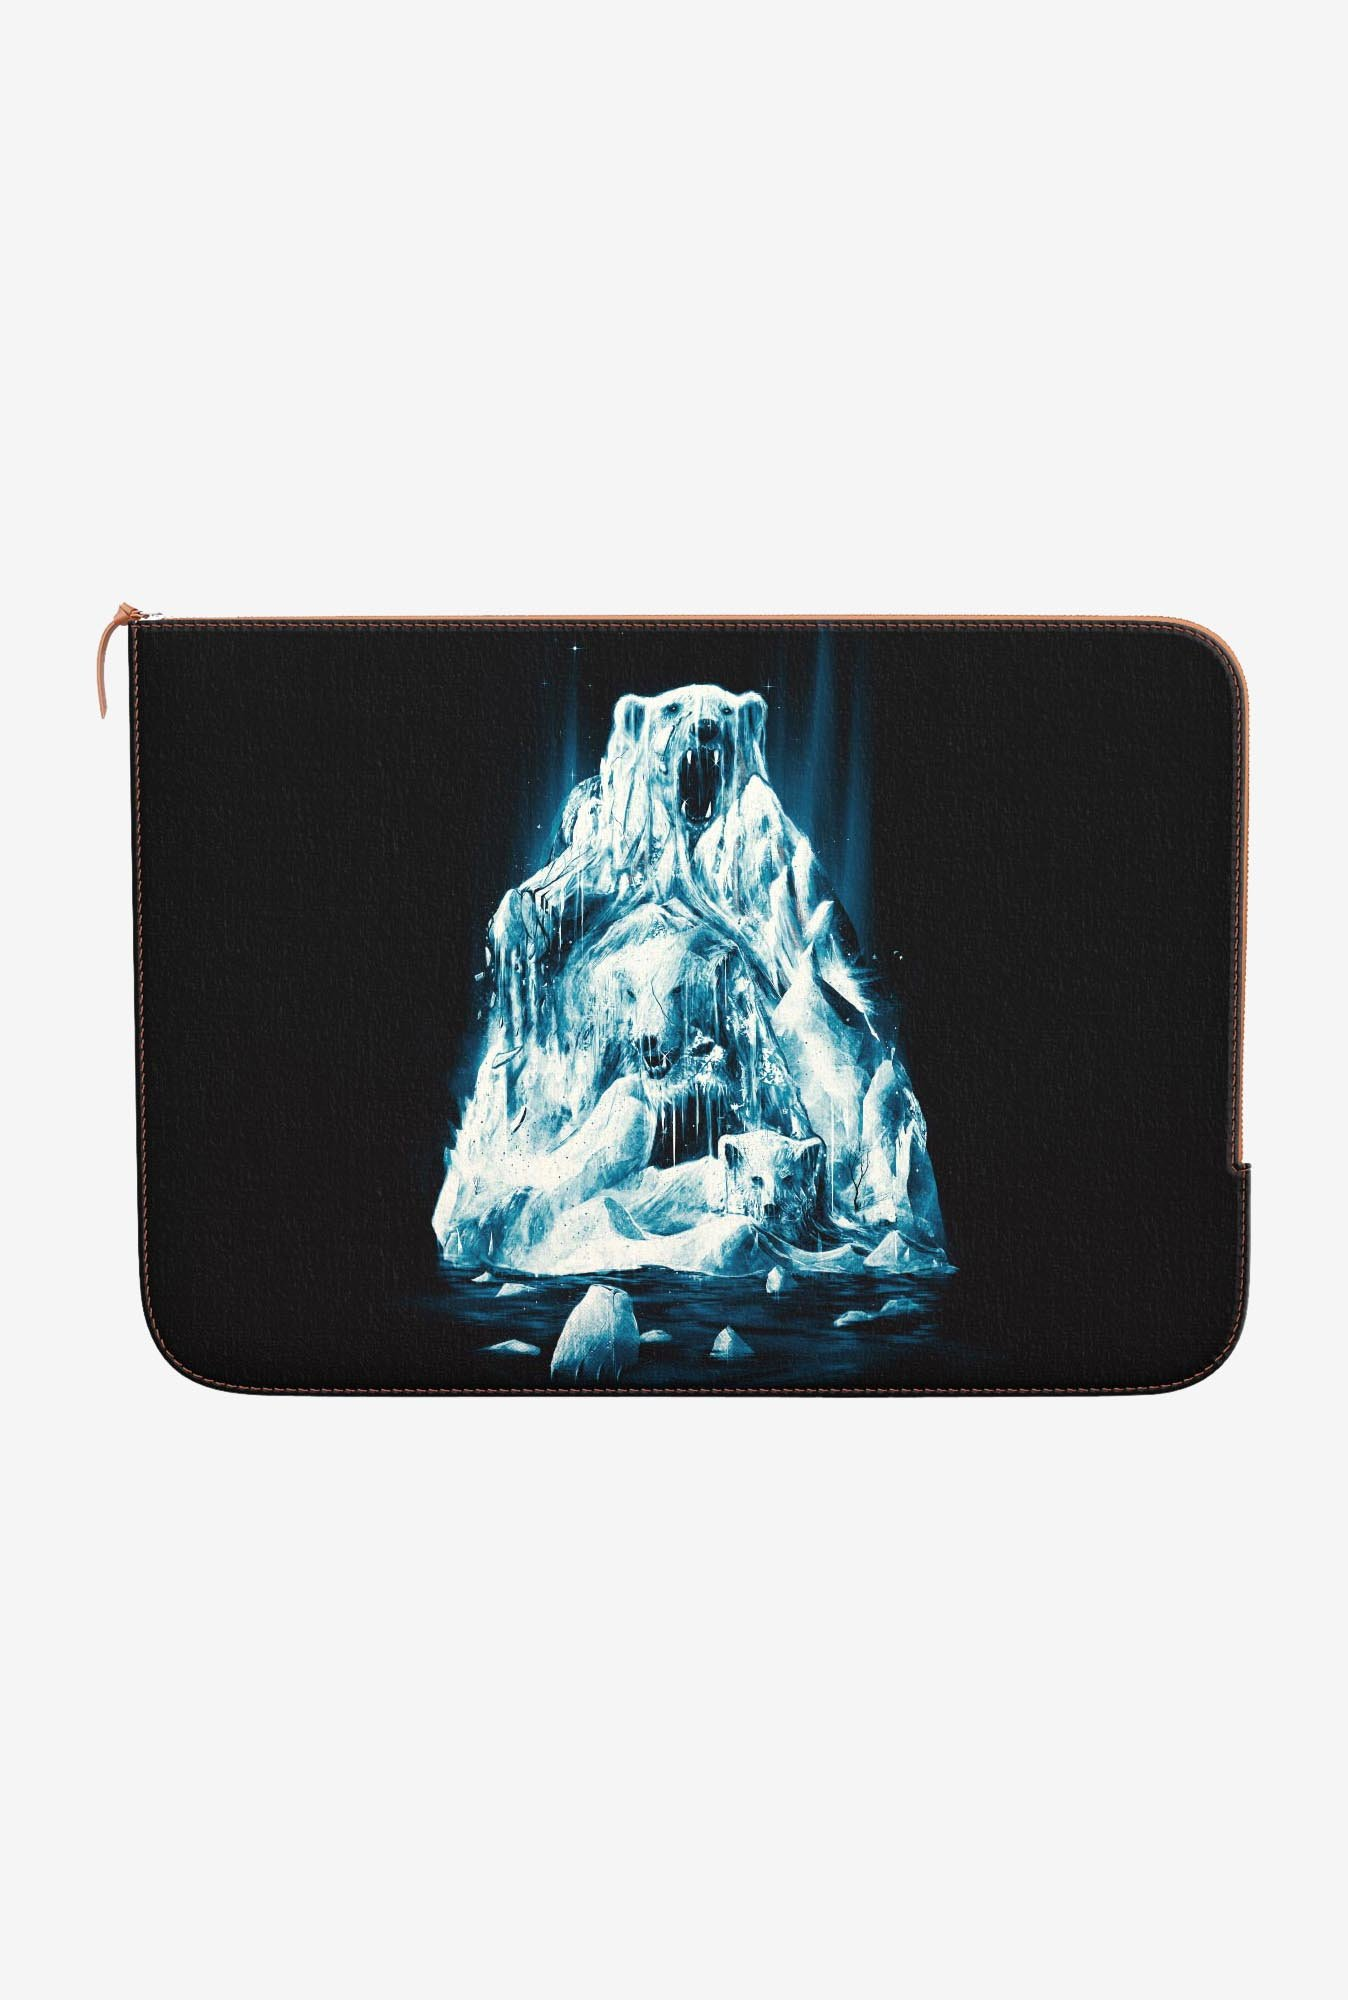 DailyObjects Polar Icebears MacBook Air 13 Zippered Sleeve